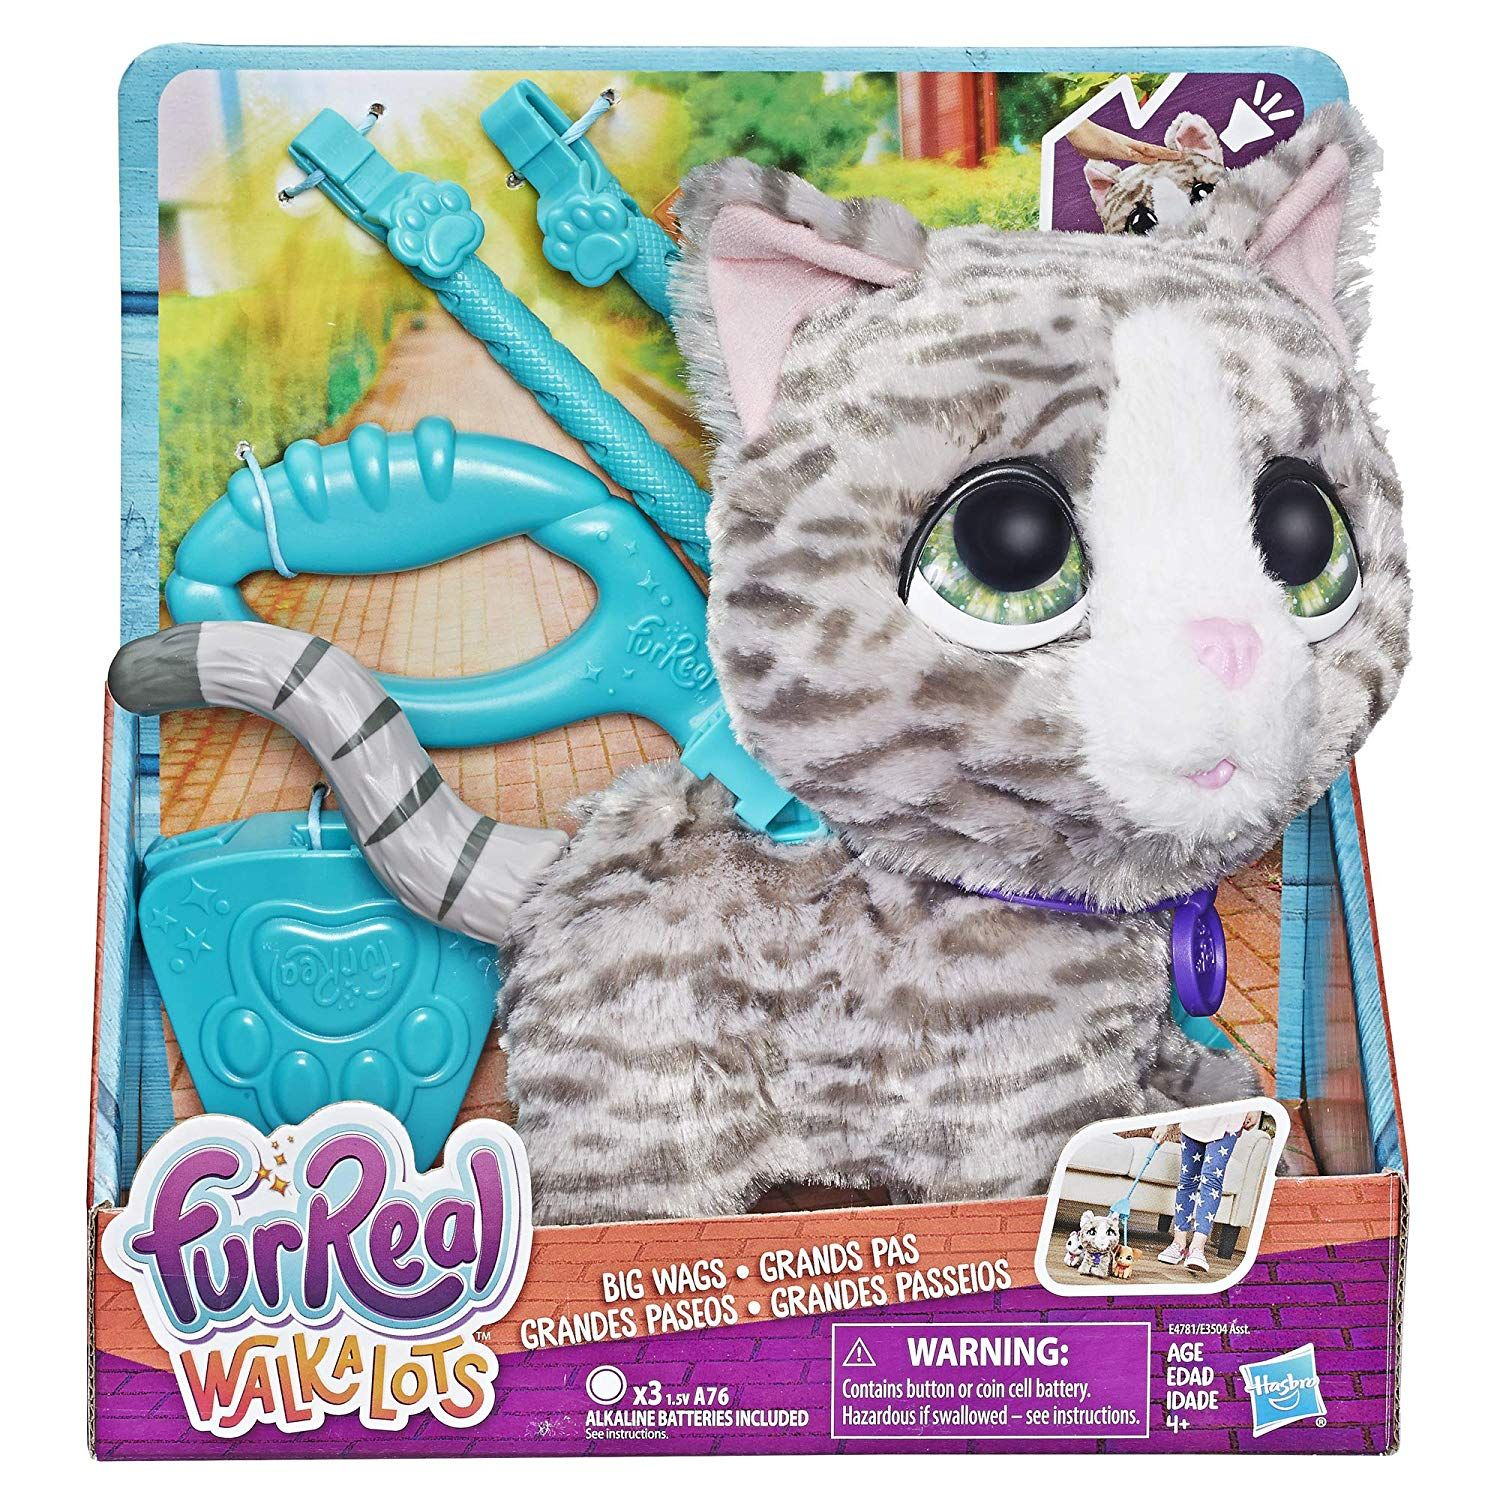 Furreal Walk A Lots Big Wags And Lil Wags Fur Real Friends Halloween Costumes For Big Kids Kitty